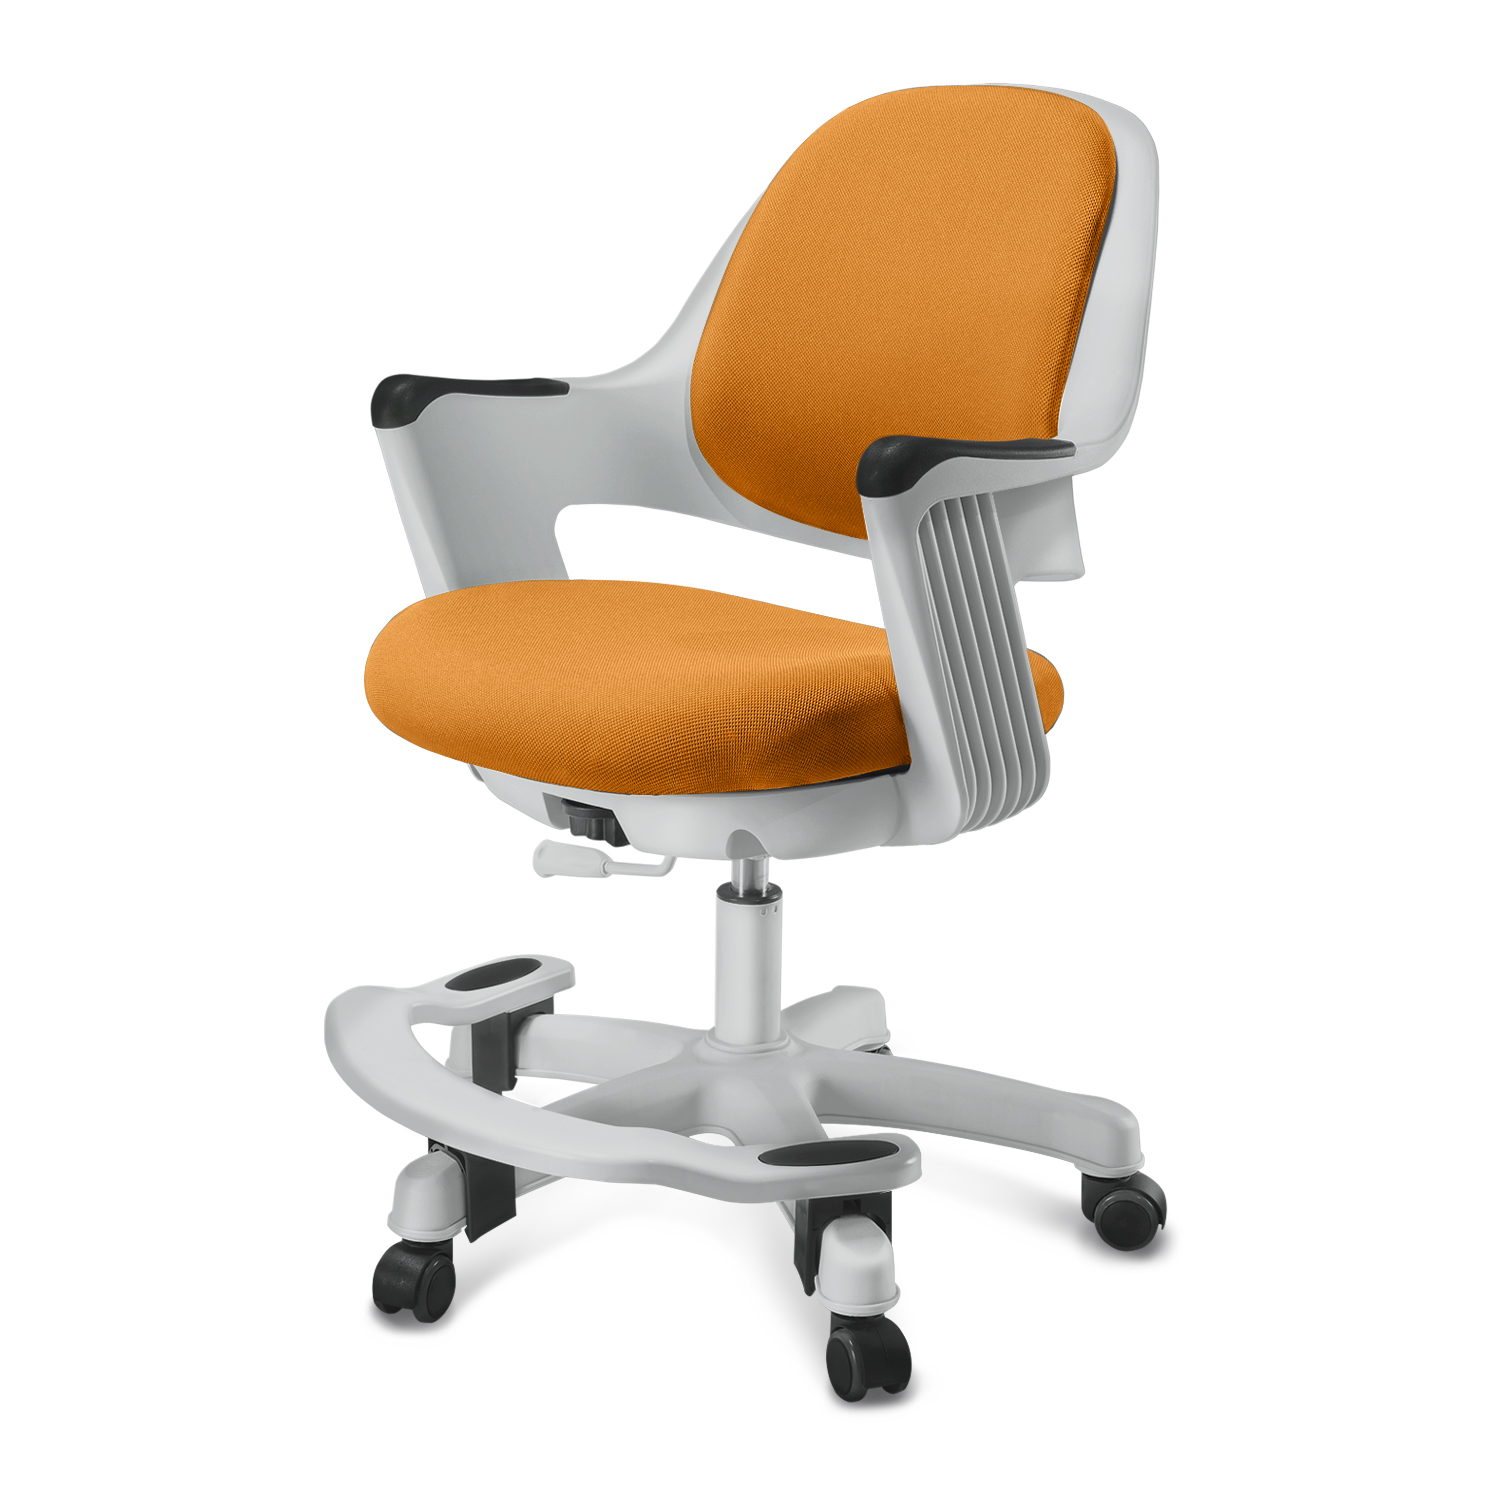 SitRite Children Chair Orange Grayscale image